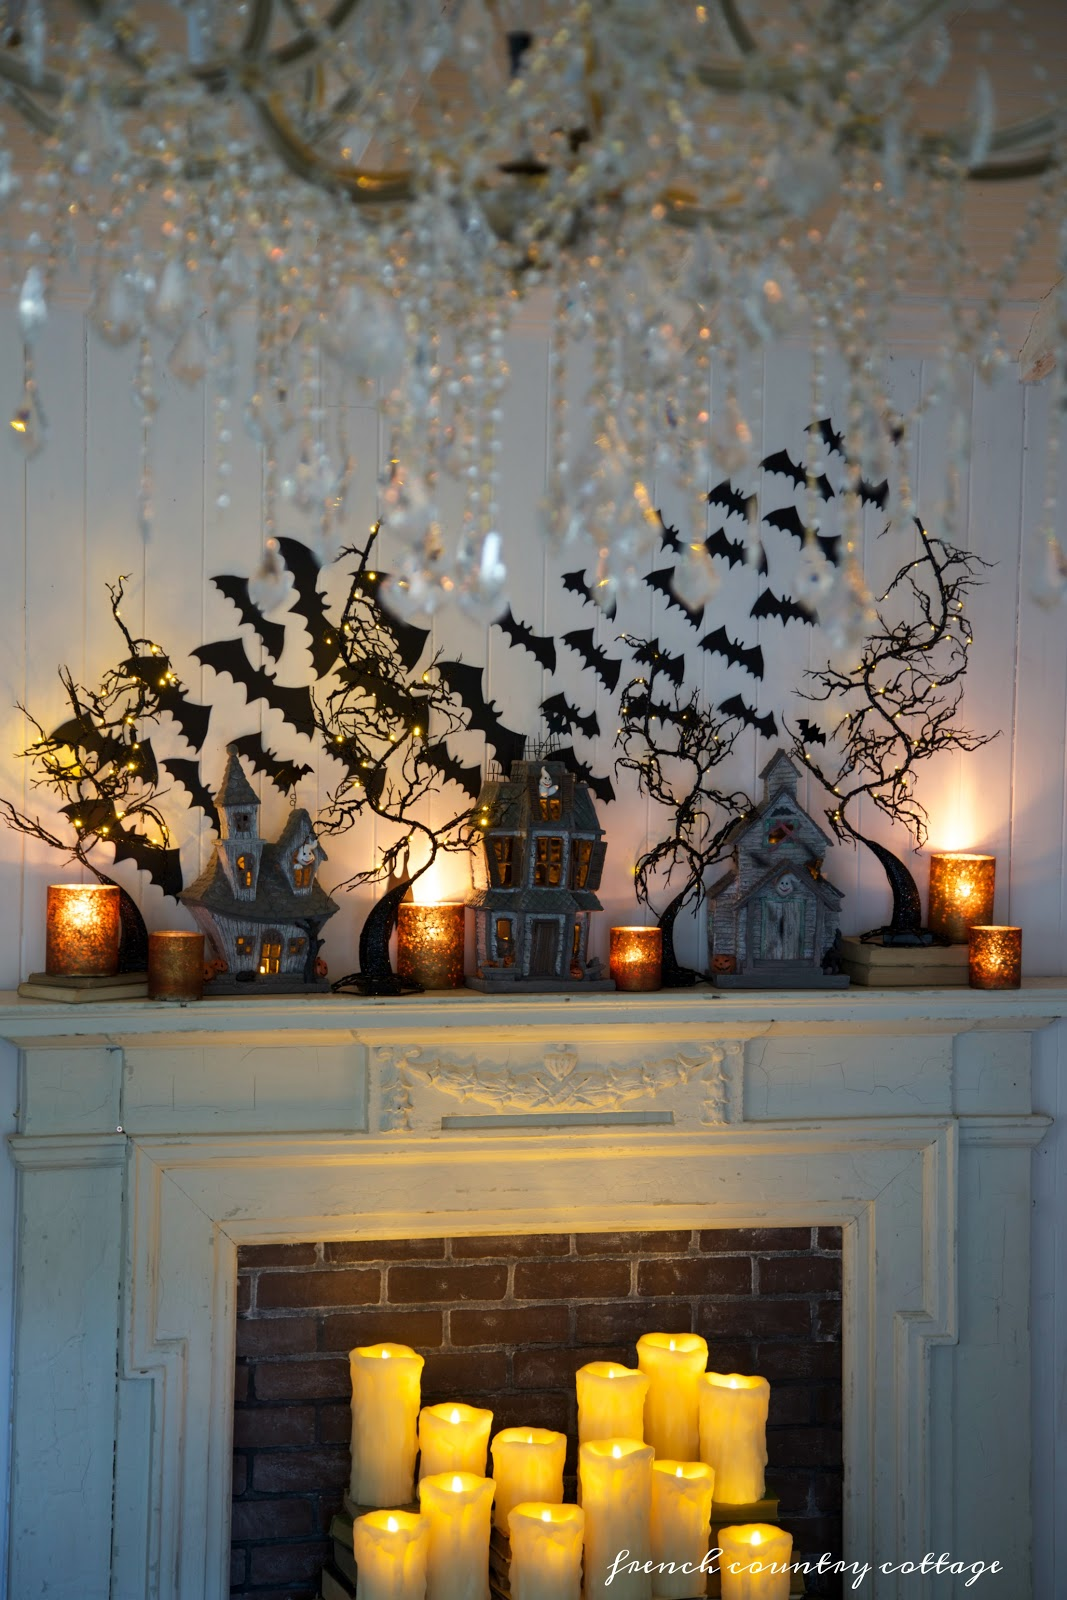 Bewitching Halloween Blog Hop - French Country Cottage